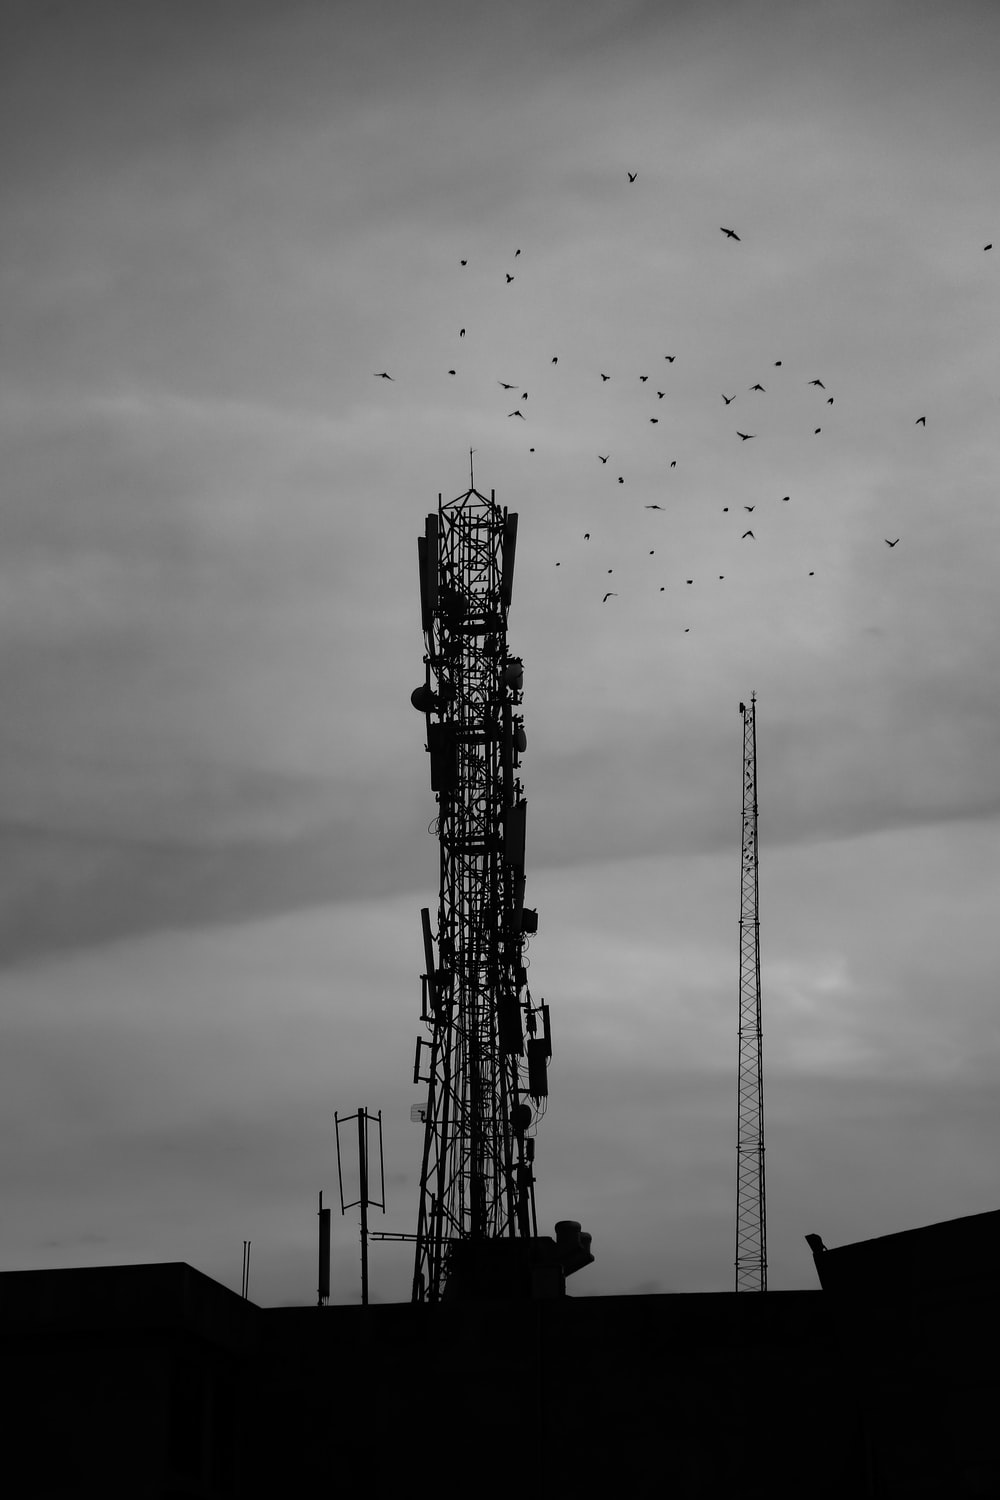 grayscale photography of flock of birds flying over the crane tower